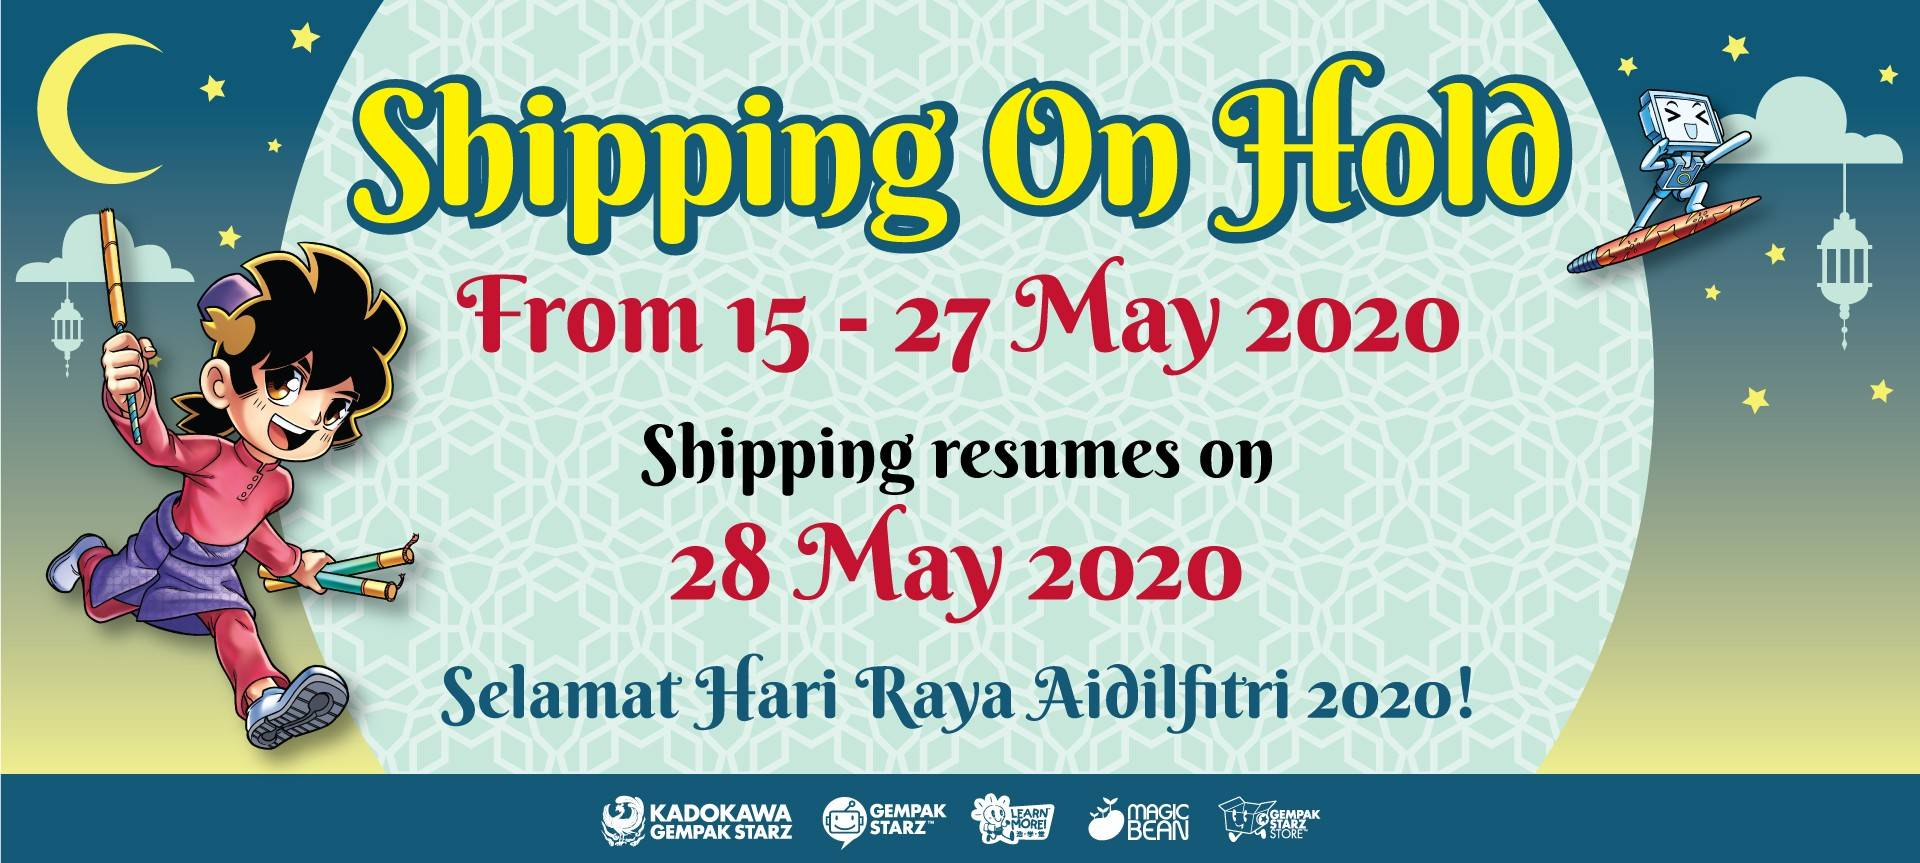 Shipping on hold for Raya 2020